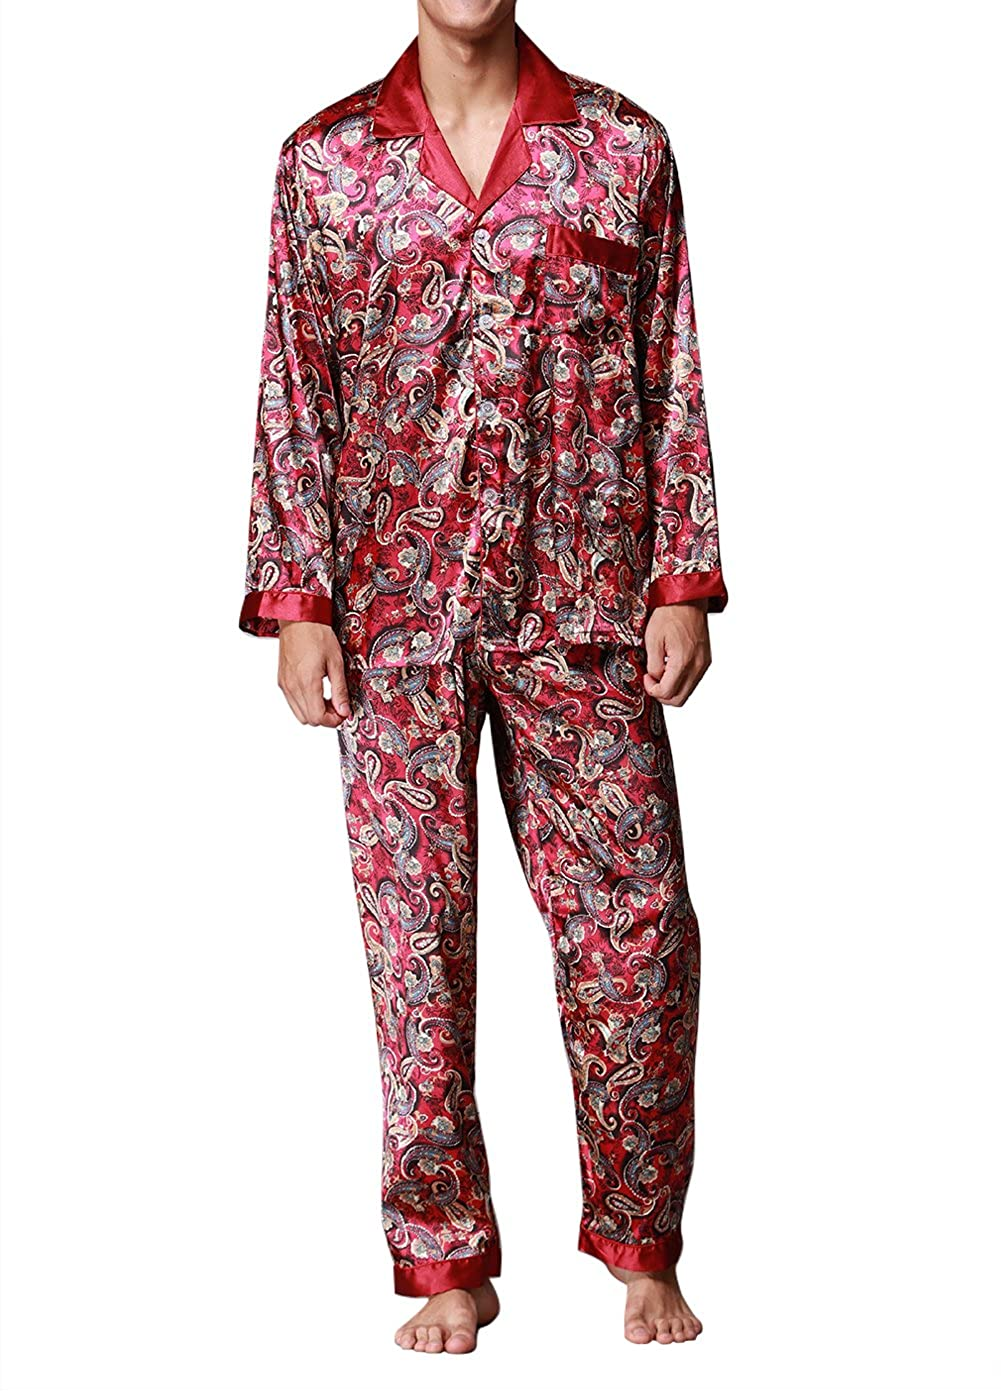 a2451811d066 Button closure 100% premium polyester satin fabric. Nicely tailored men s  long sleeves silk pajama sets. Durable stitching that will last.